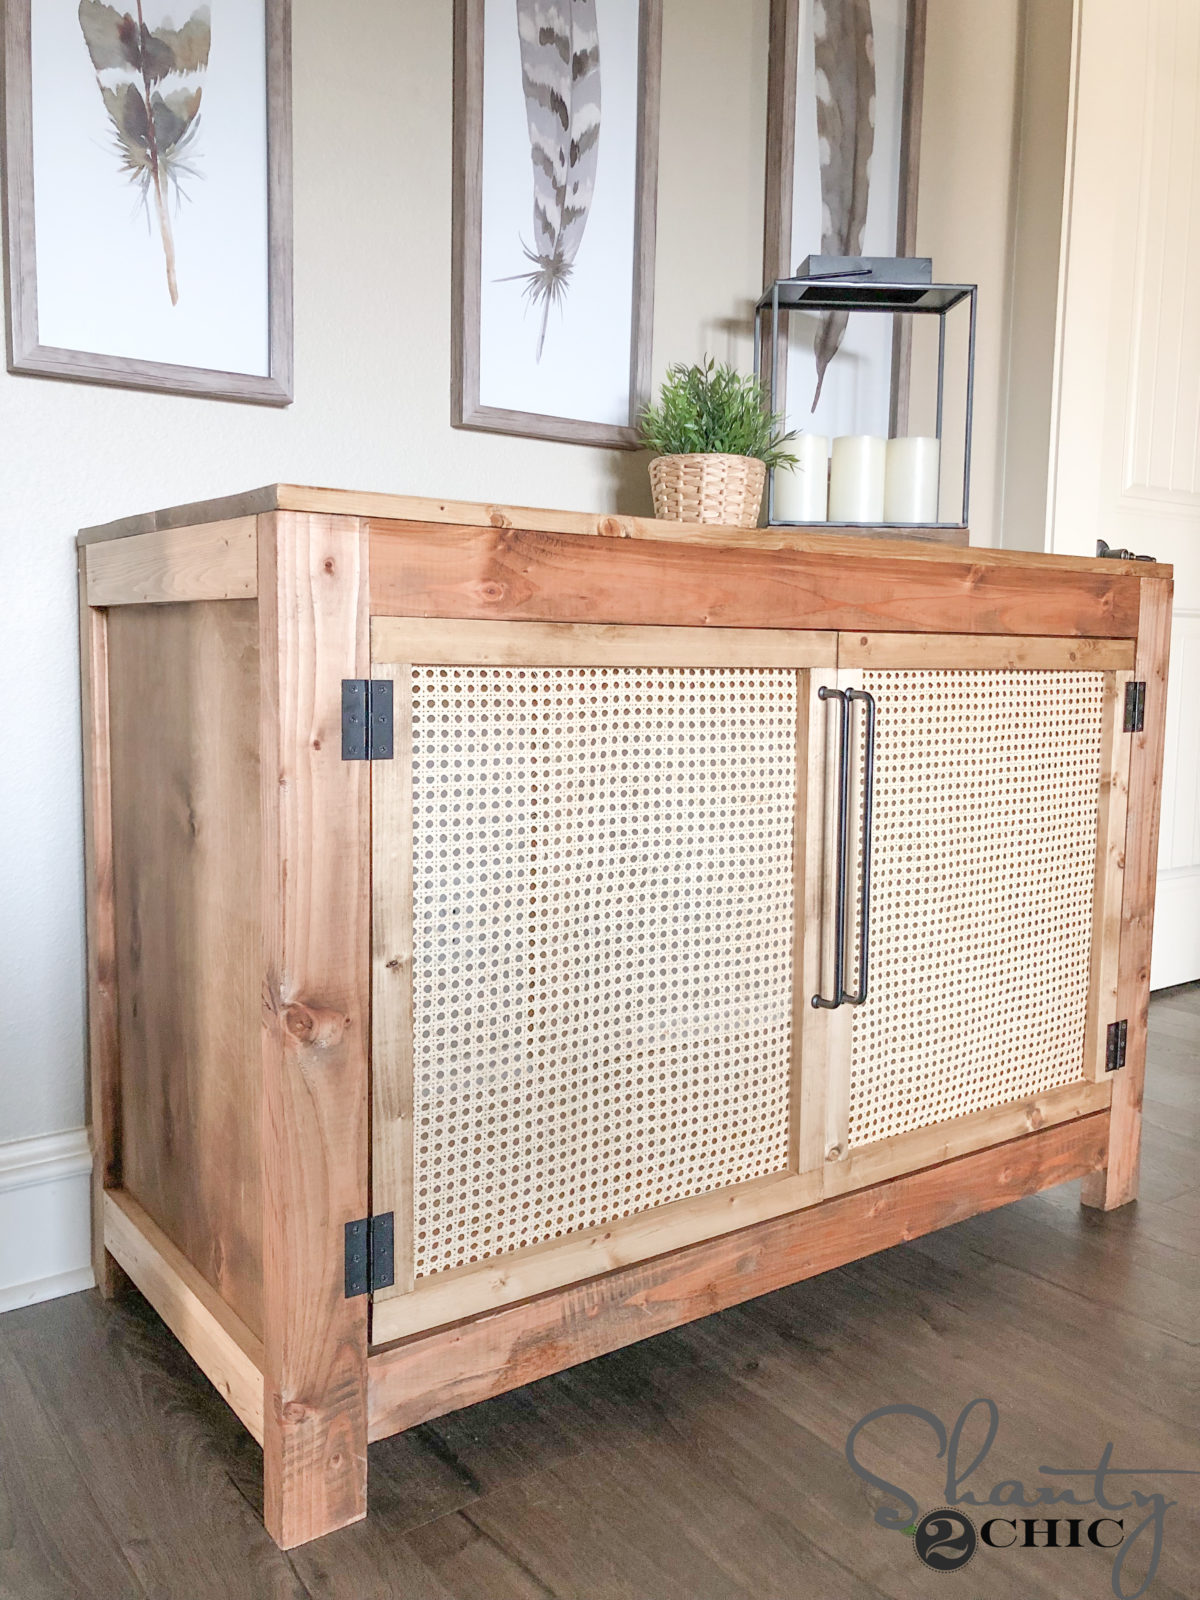 Diy Cane Cabinet How To Build With Free Plans Shanty 2 Chic